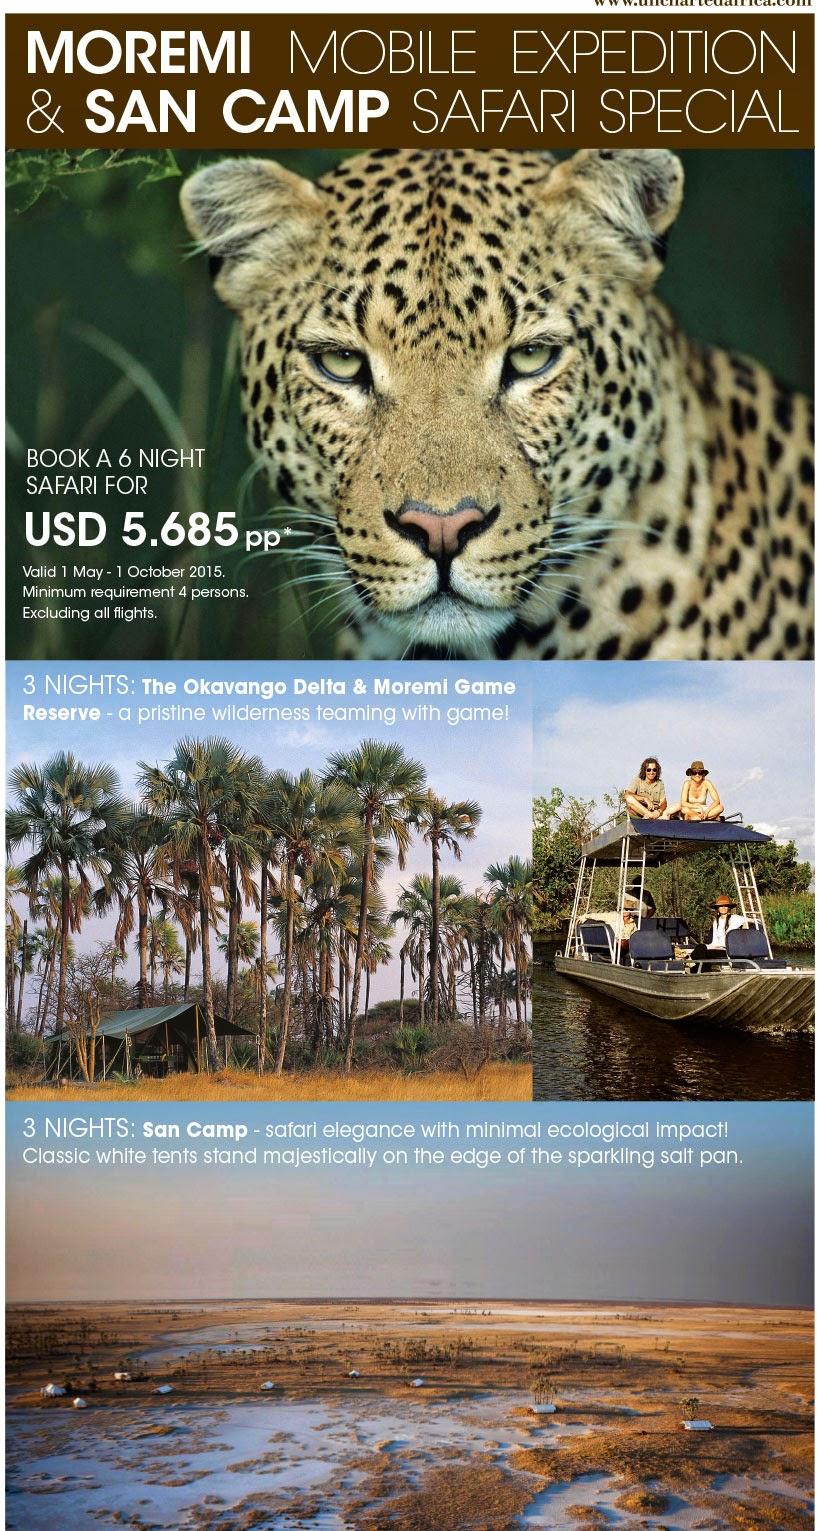 Uncharted Africa Botswana San Camp Special